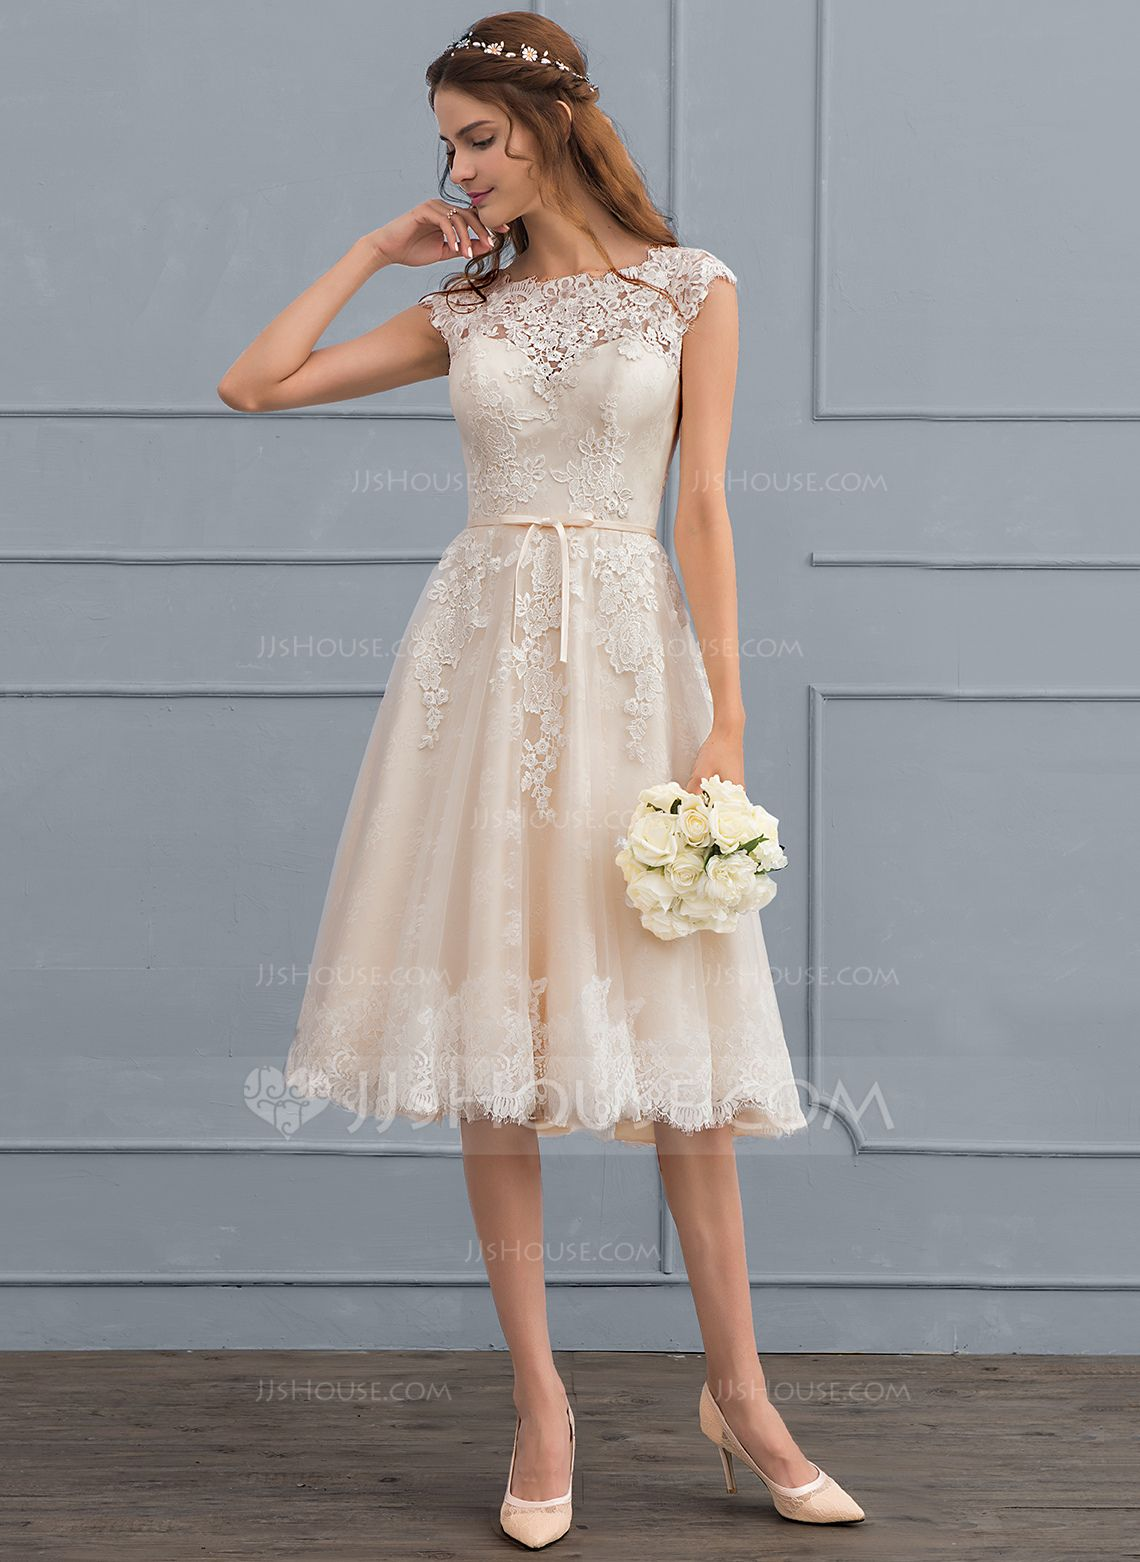 2019 Discount Wedding Dresses Nyc - Women\'s Dresses for Weddings ...